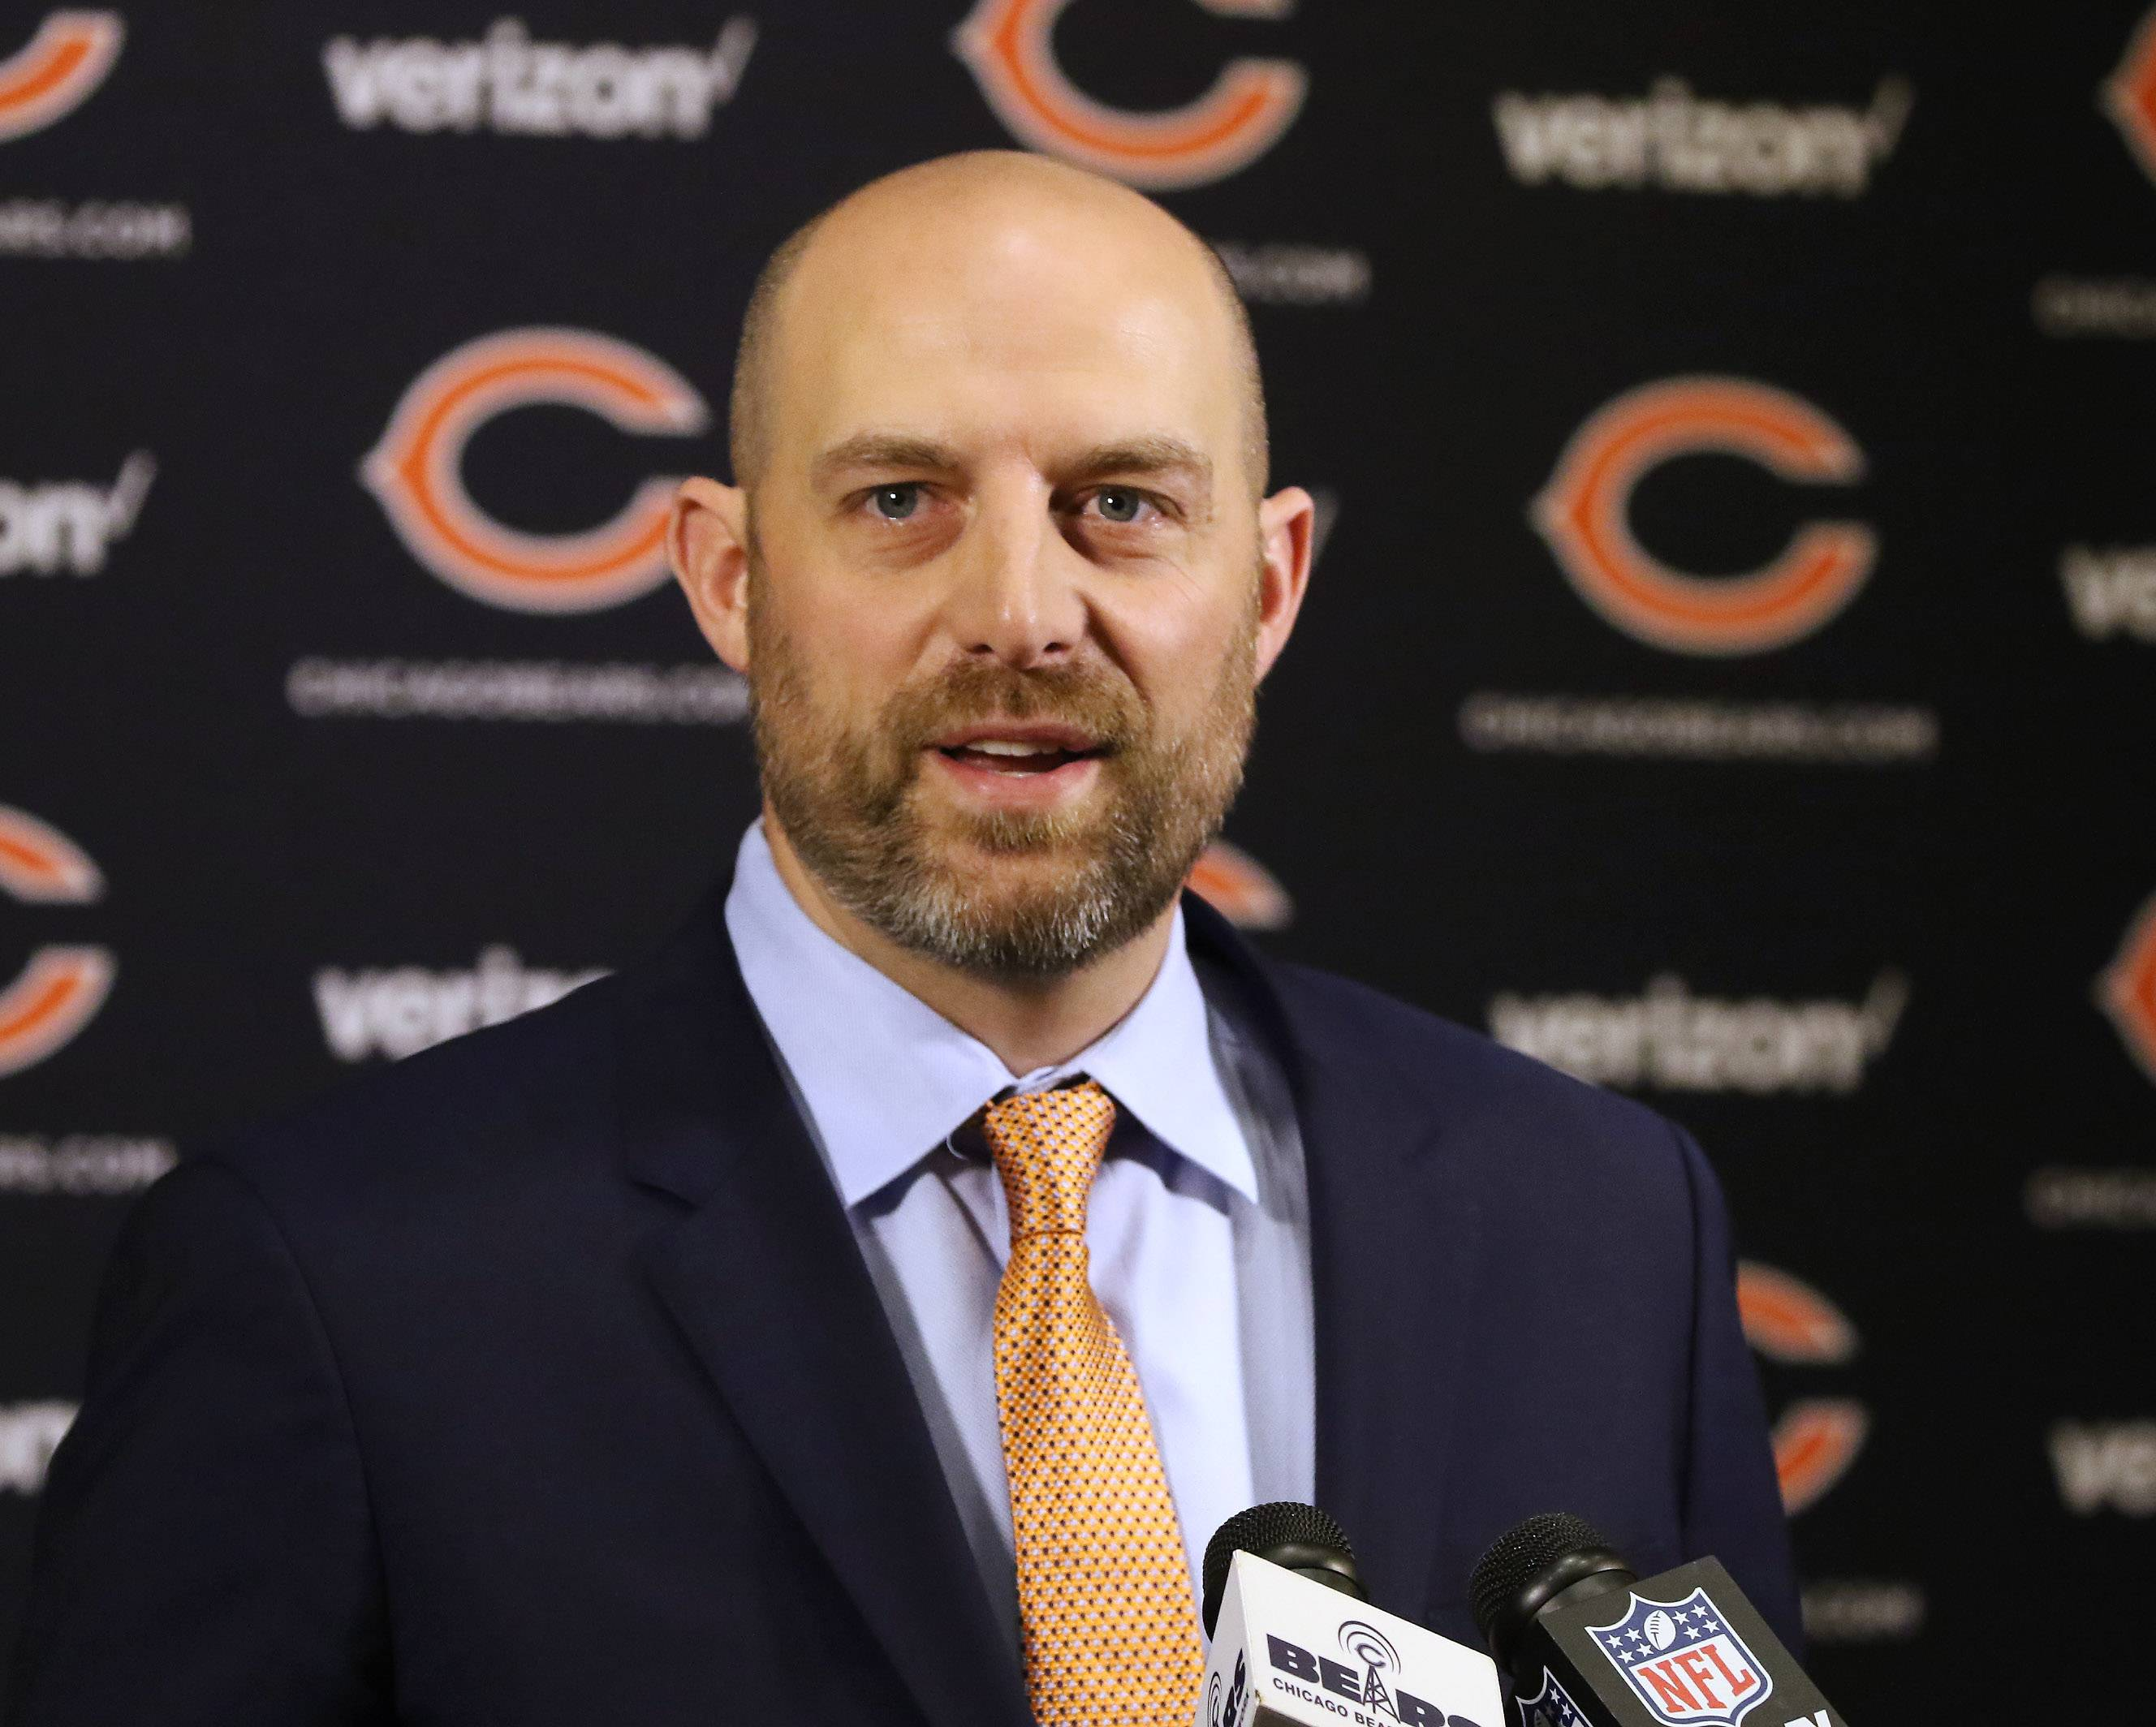 At age 39, Matt Nagy is the new head coach of the Chicago Bears and only a few months younger than the team's general manager, Ryan Pace.